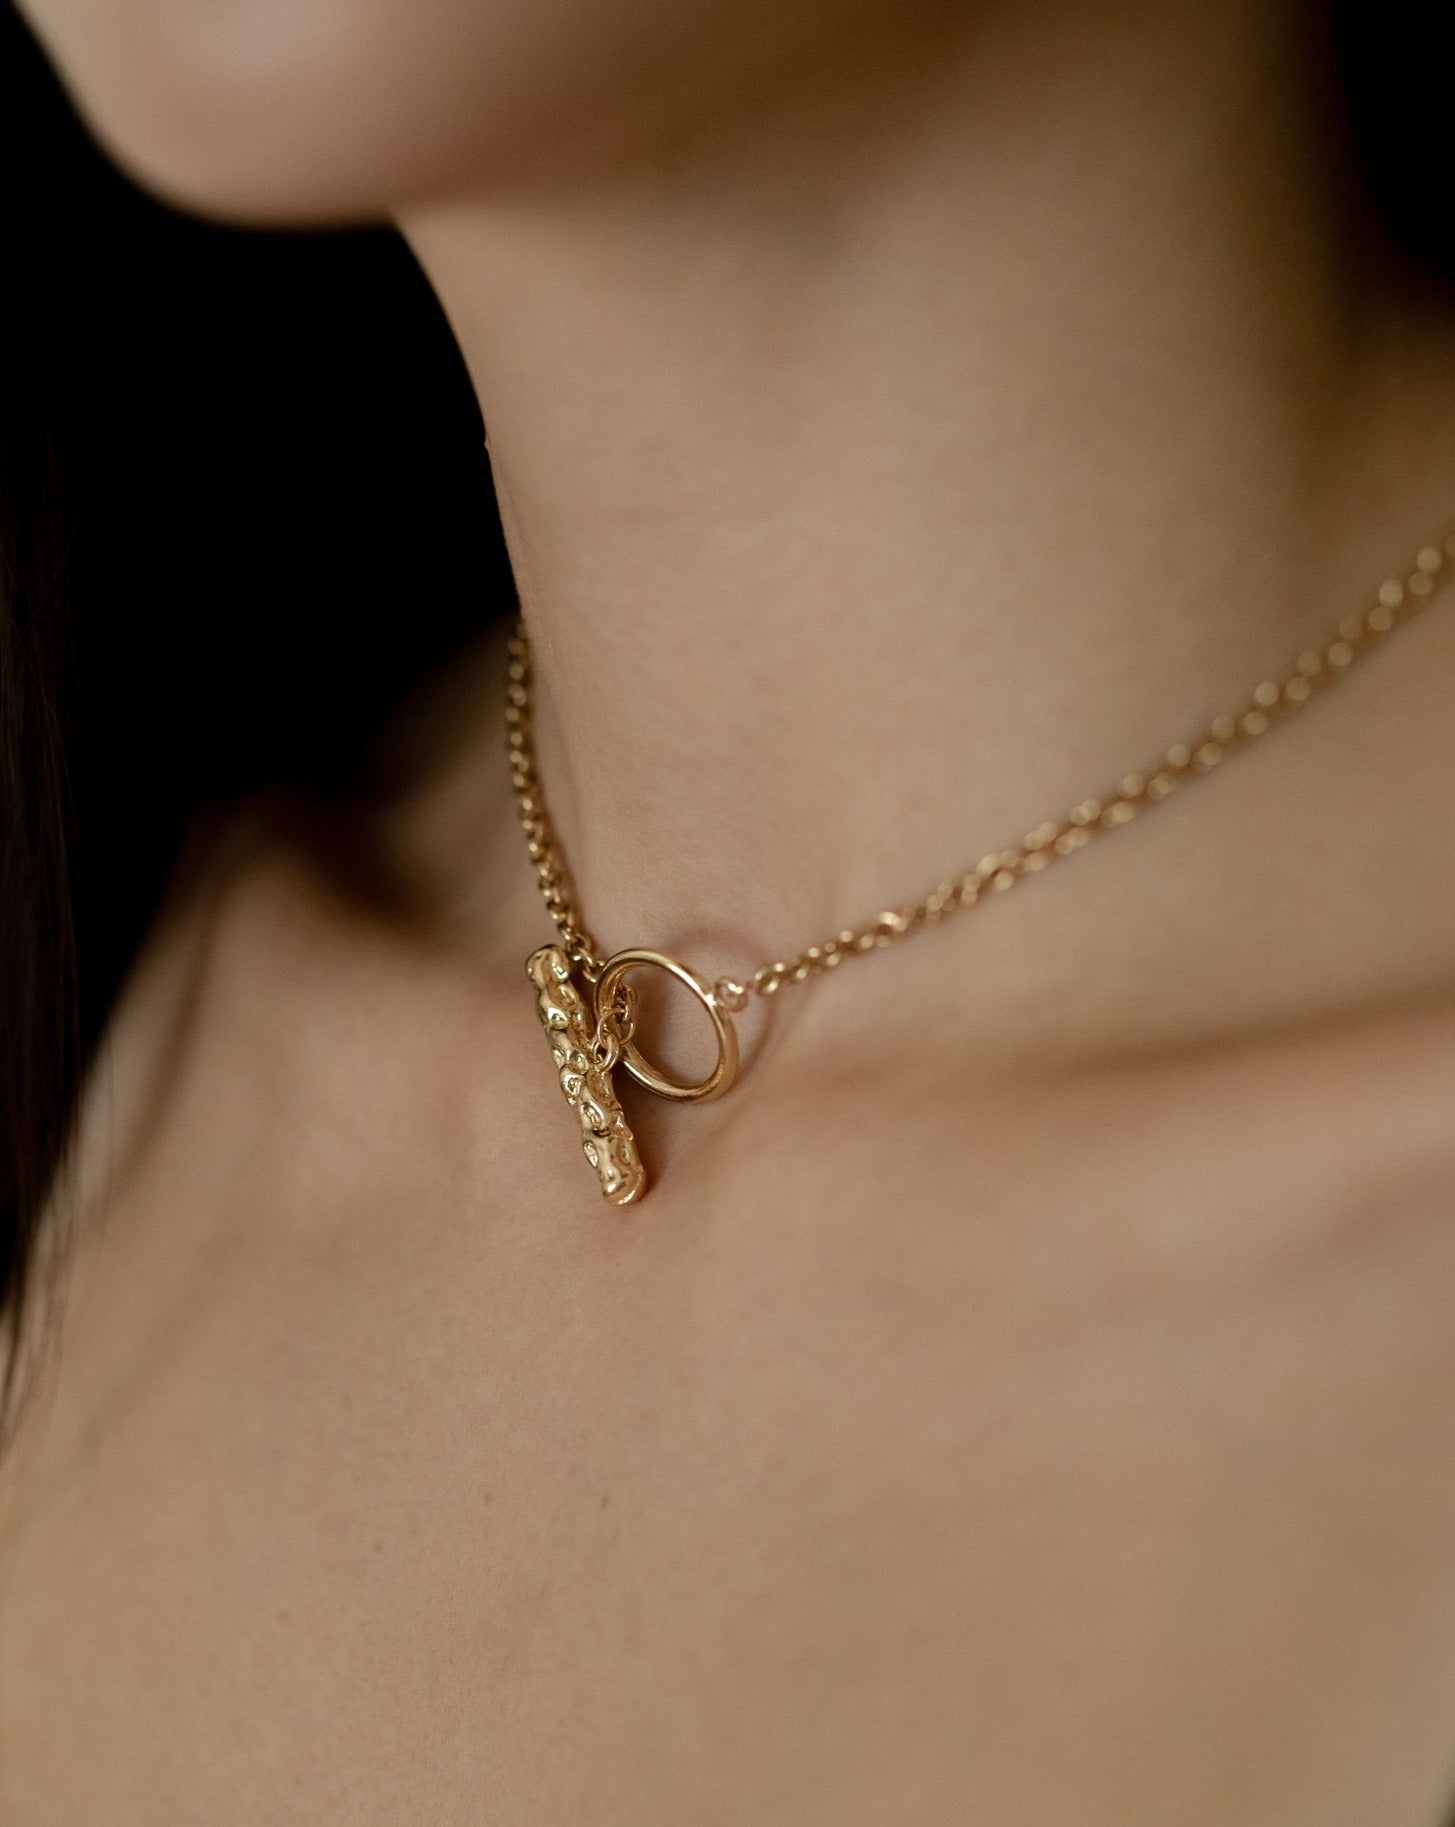 In A Perfect World Ceres necklace minimalistic necklace hammered toggle clasp